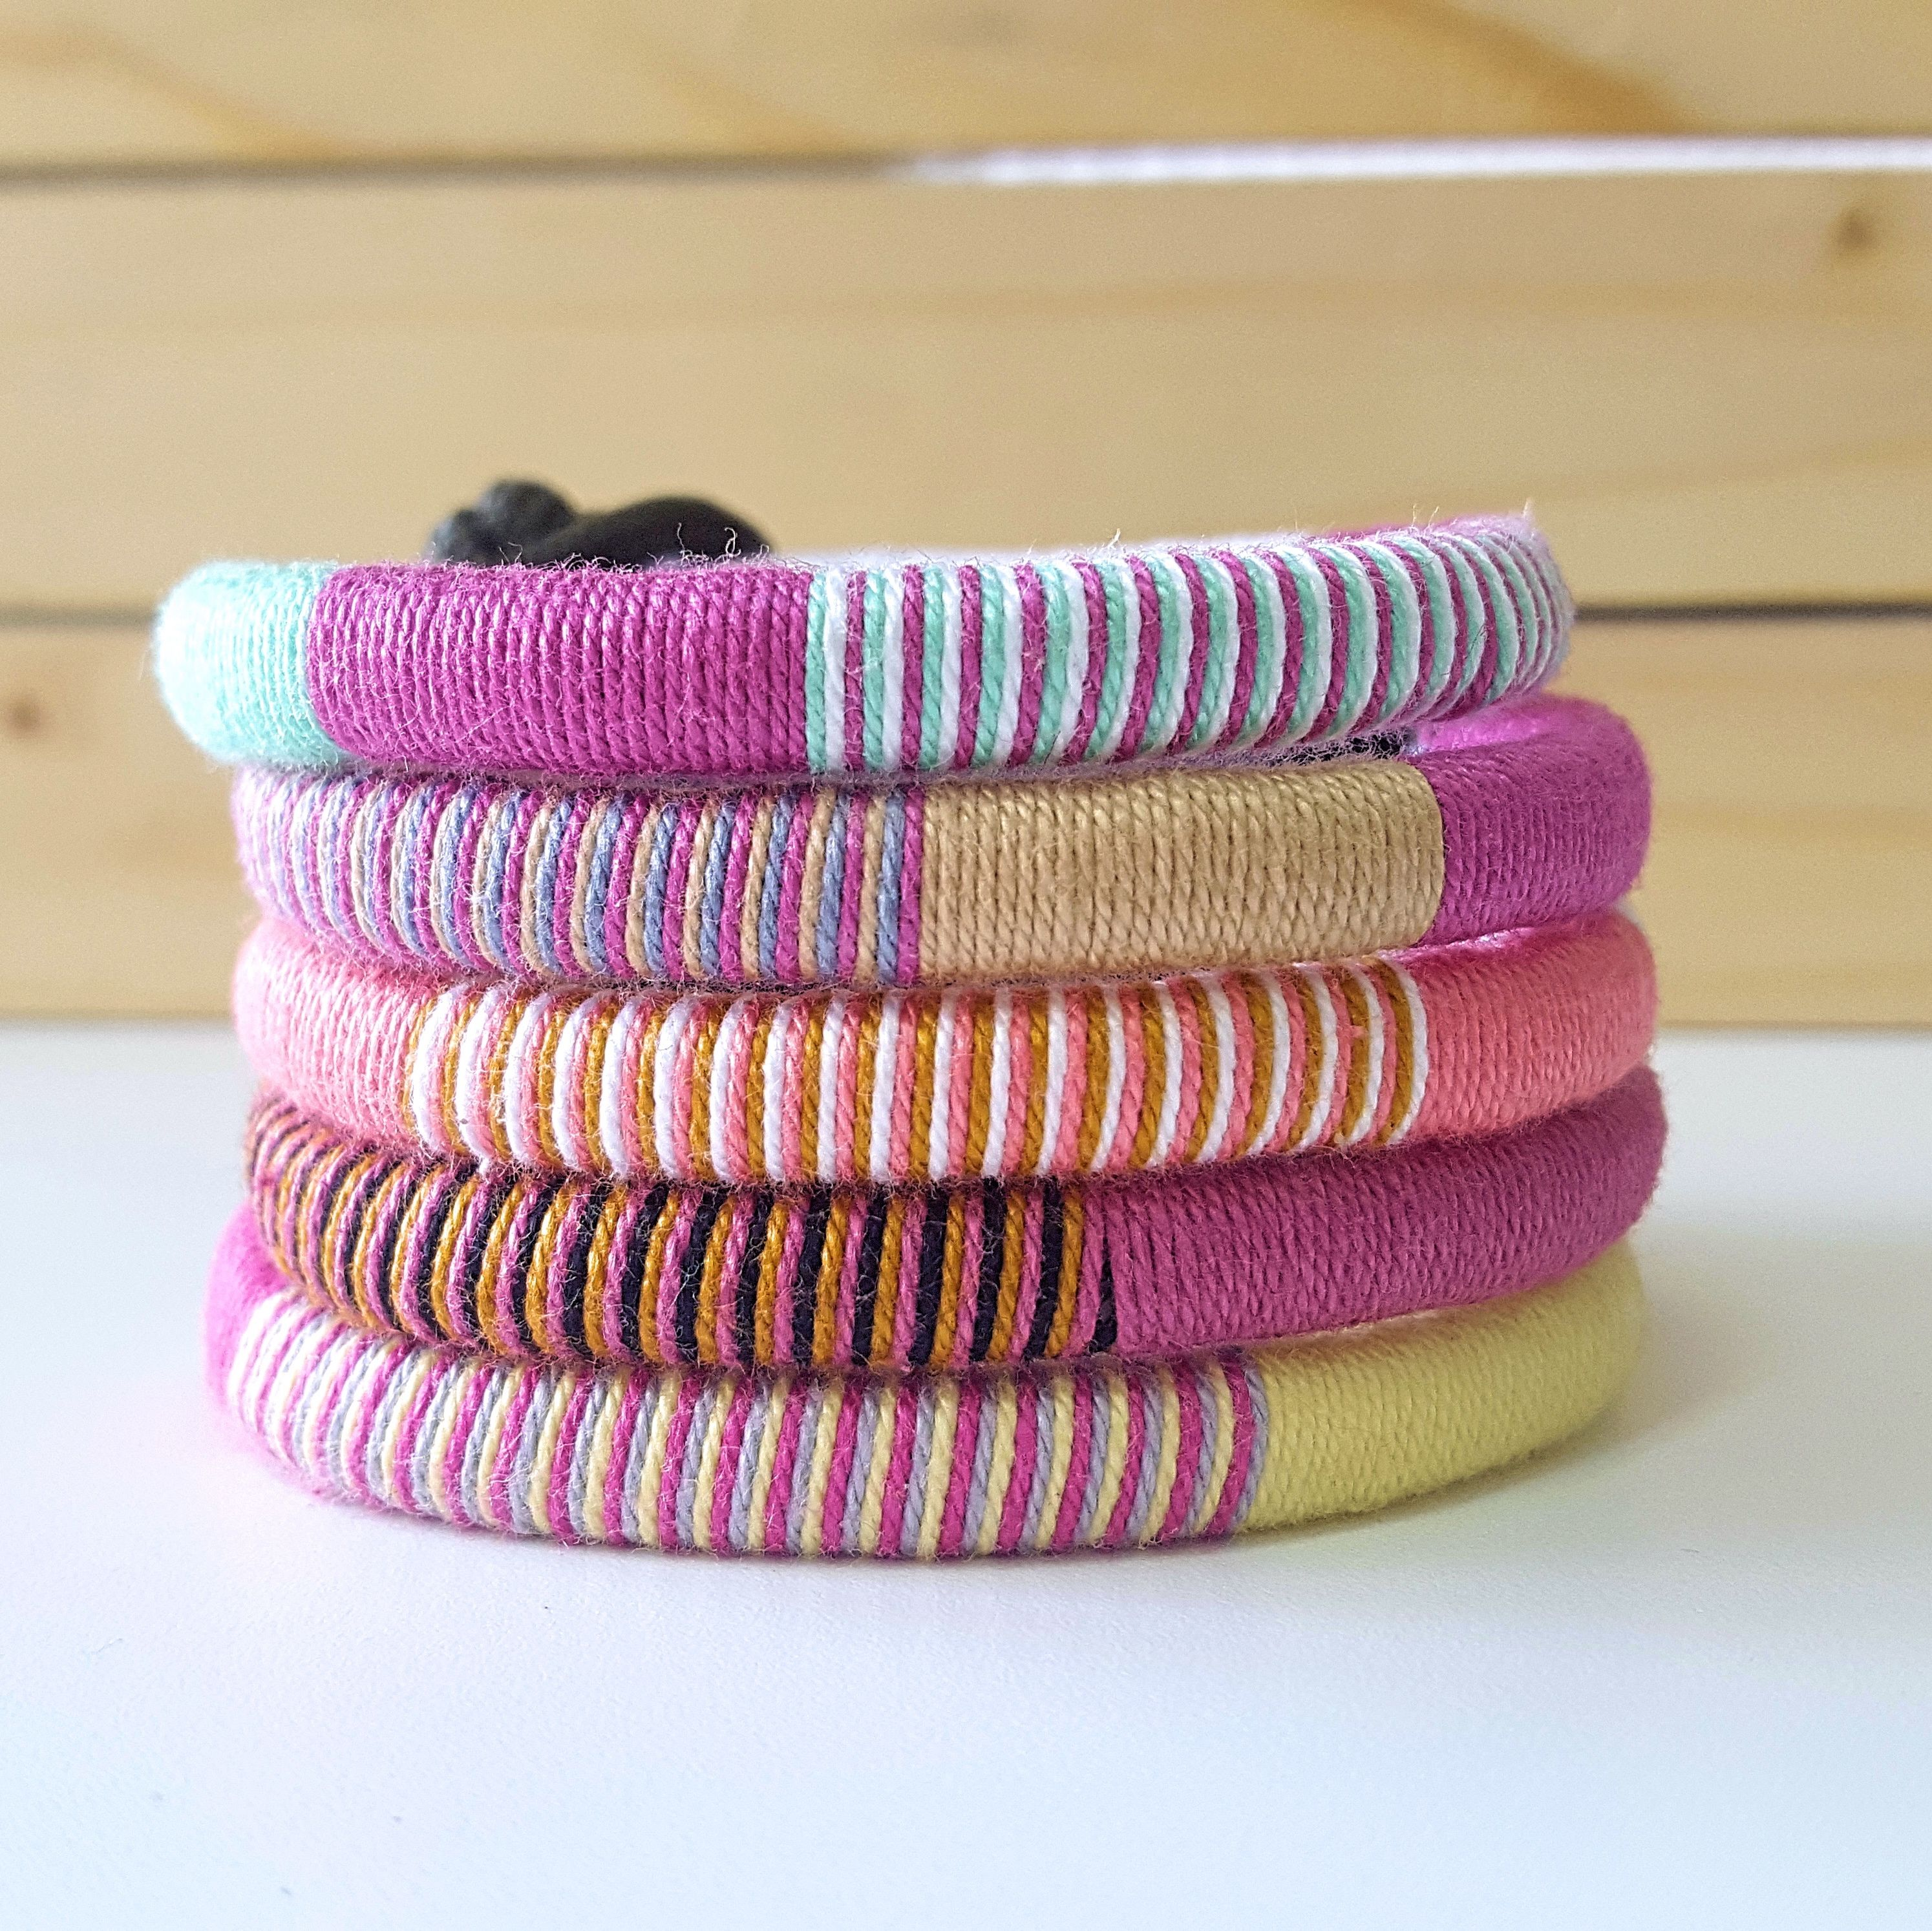 These pink thread hippie bracelets are perfect for your casual spring outfits. They are lightweight and easy to wear and will surely bring a pop of color to your OOTD this spring season. It could also be perfect for your summer outfits.